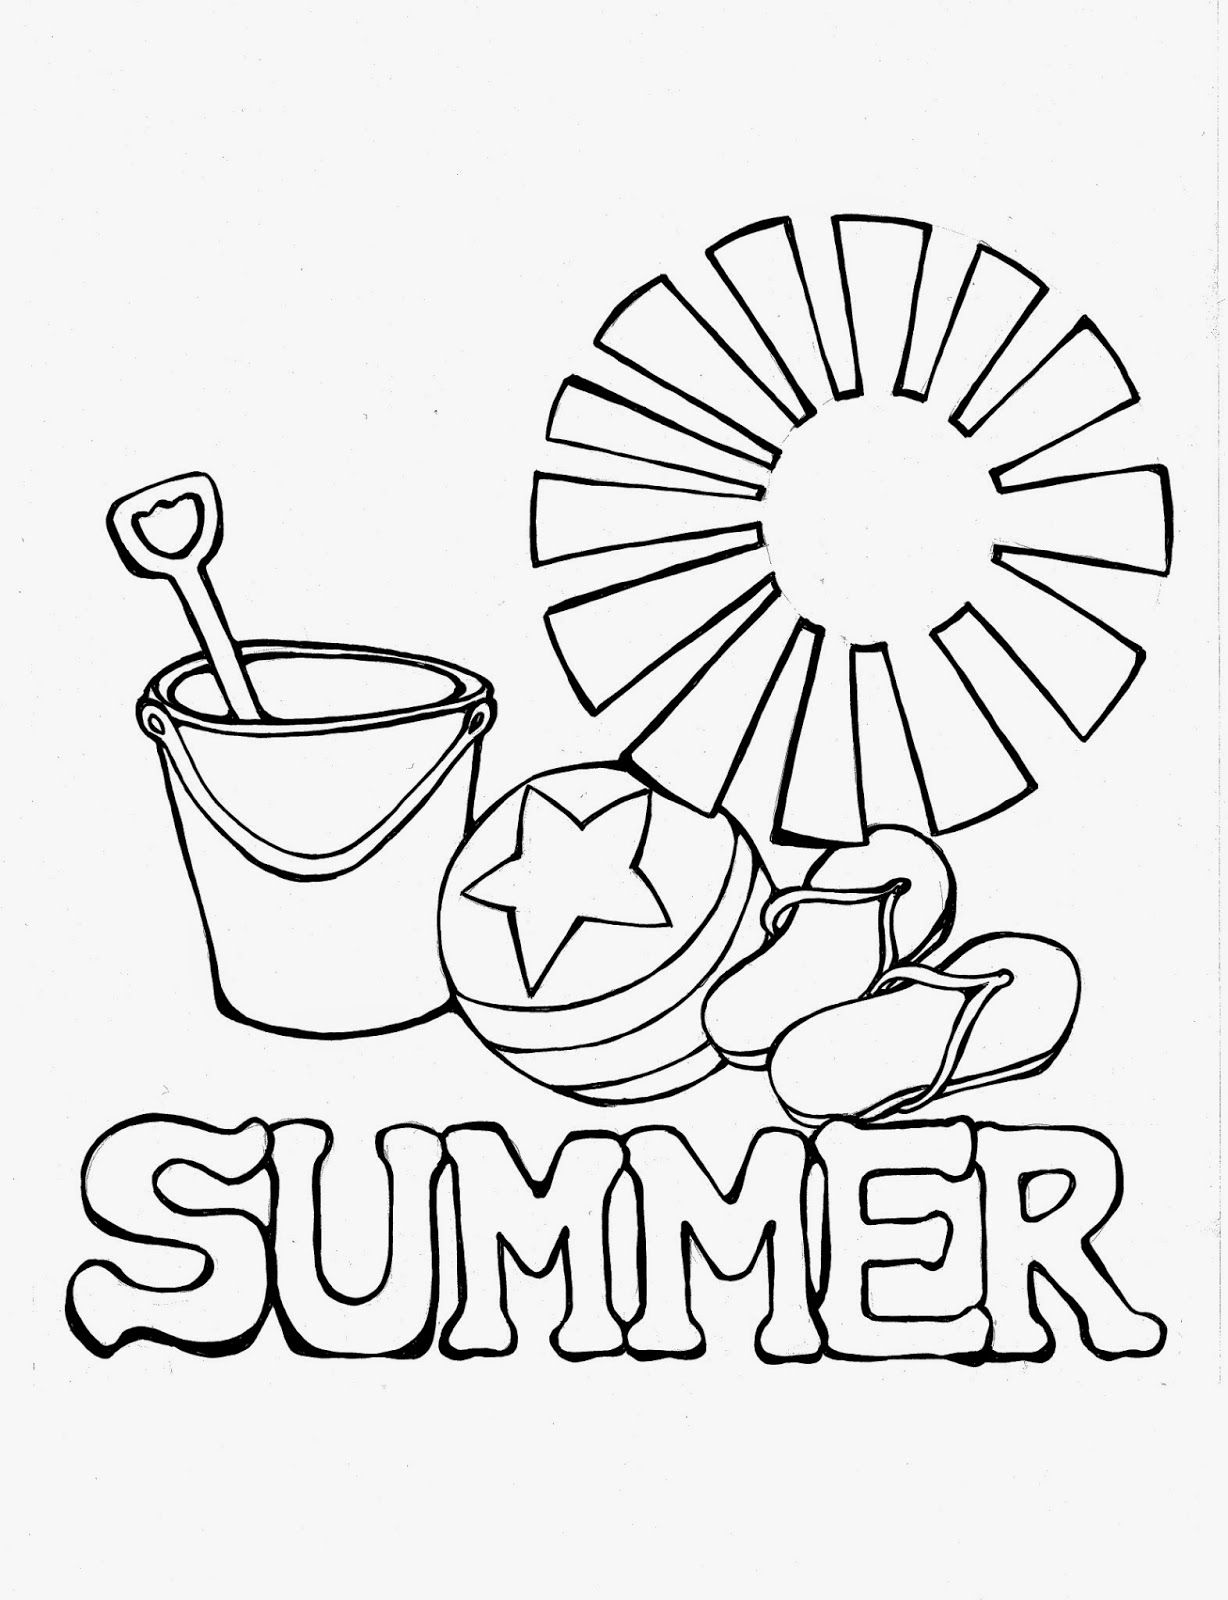 Free Printable Summer Coloring Pages Free Coloring Sheets Summer Coloring Sheets Summer Coloring Pages Summer Coloring Pages For Kids